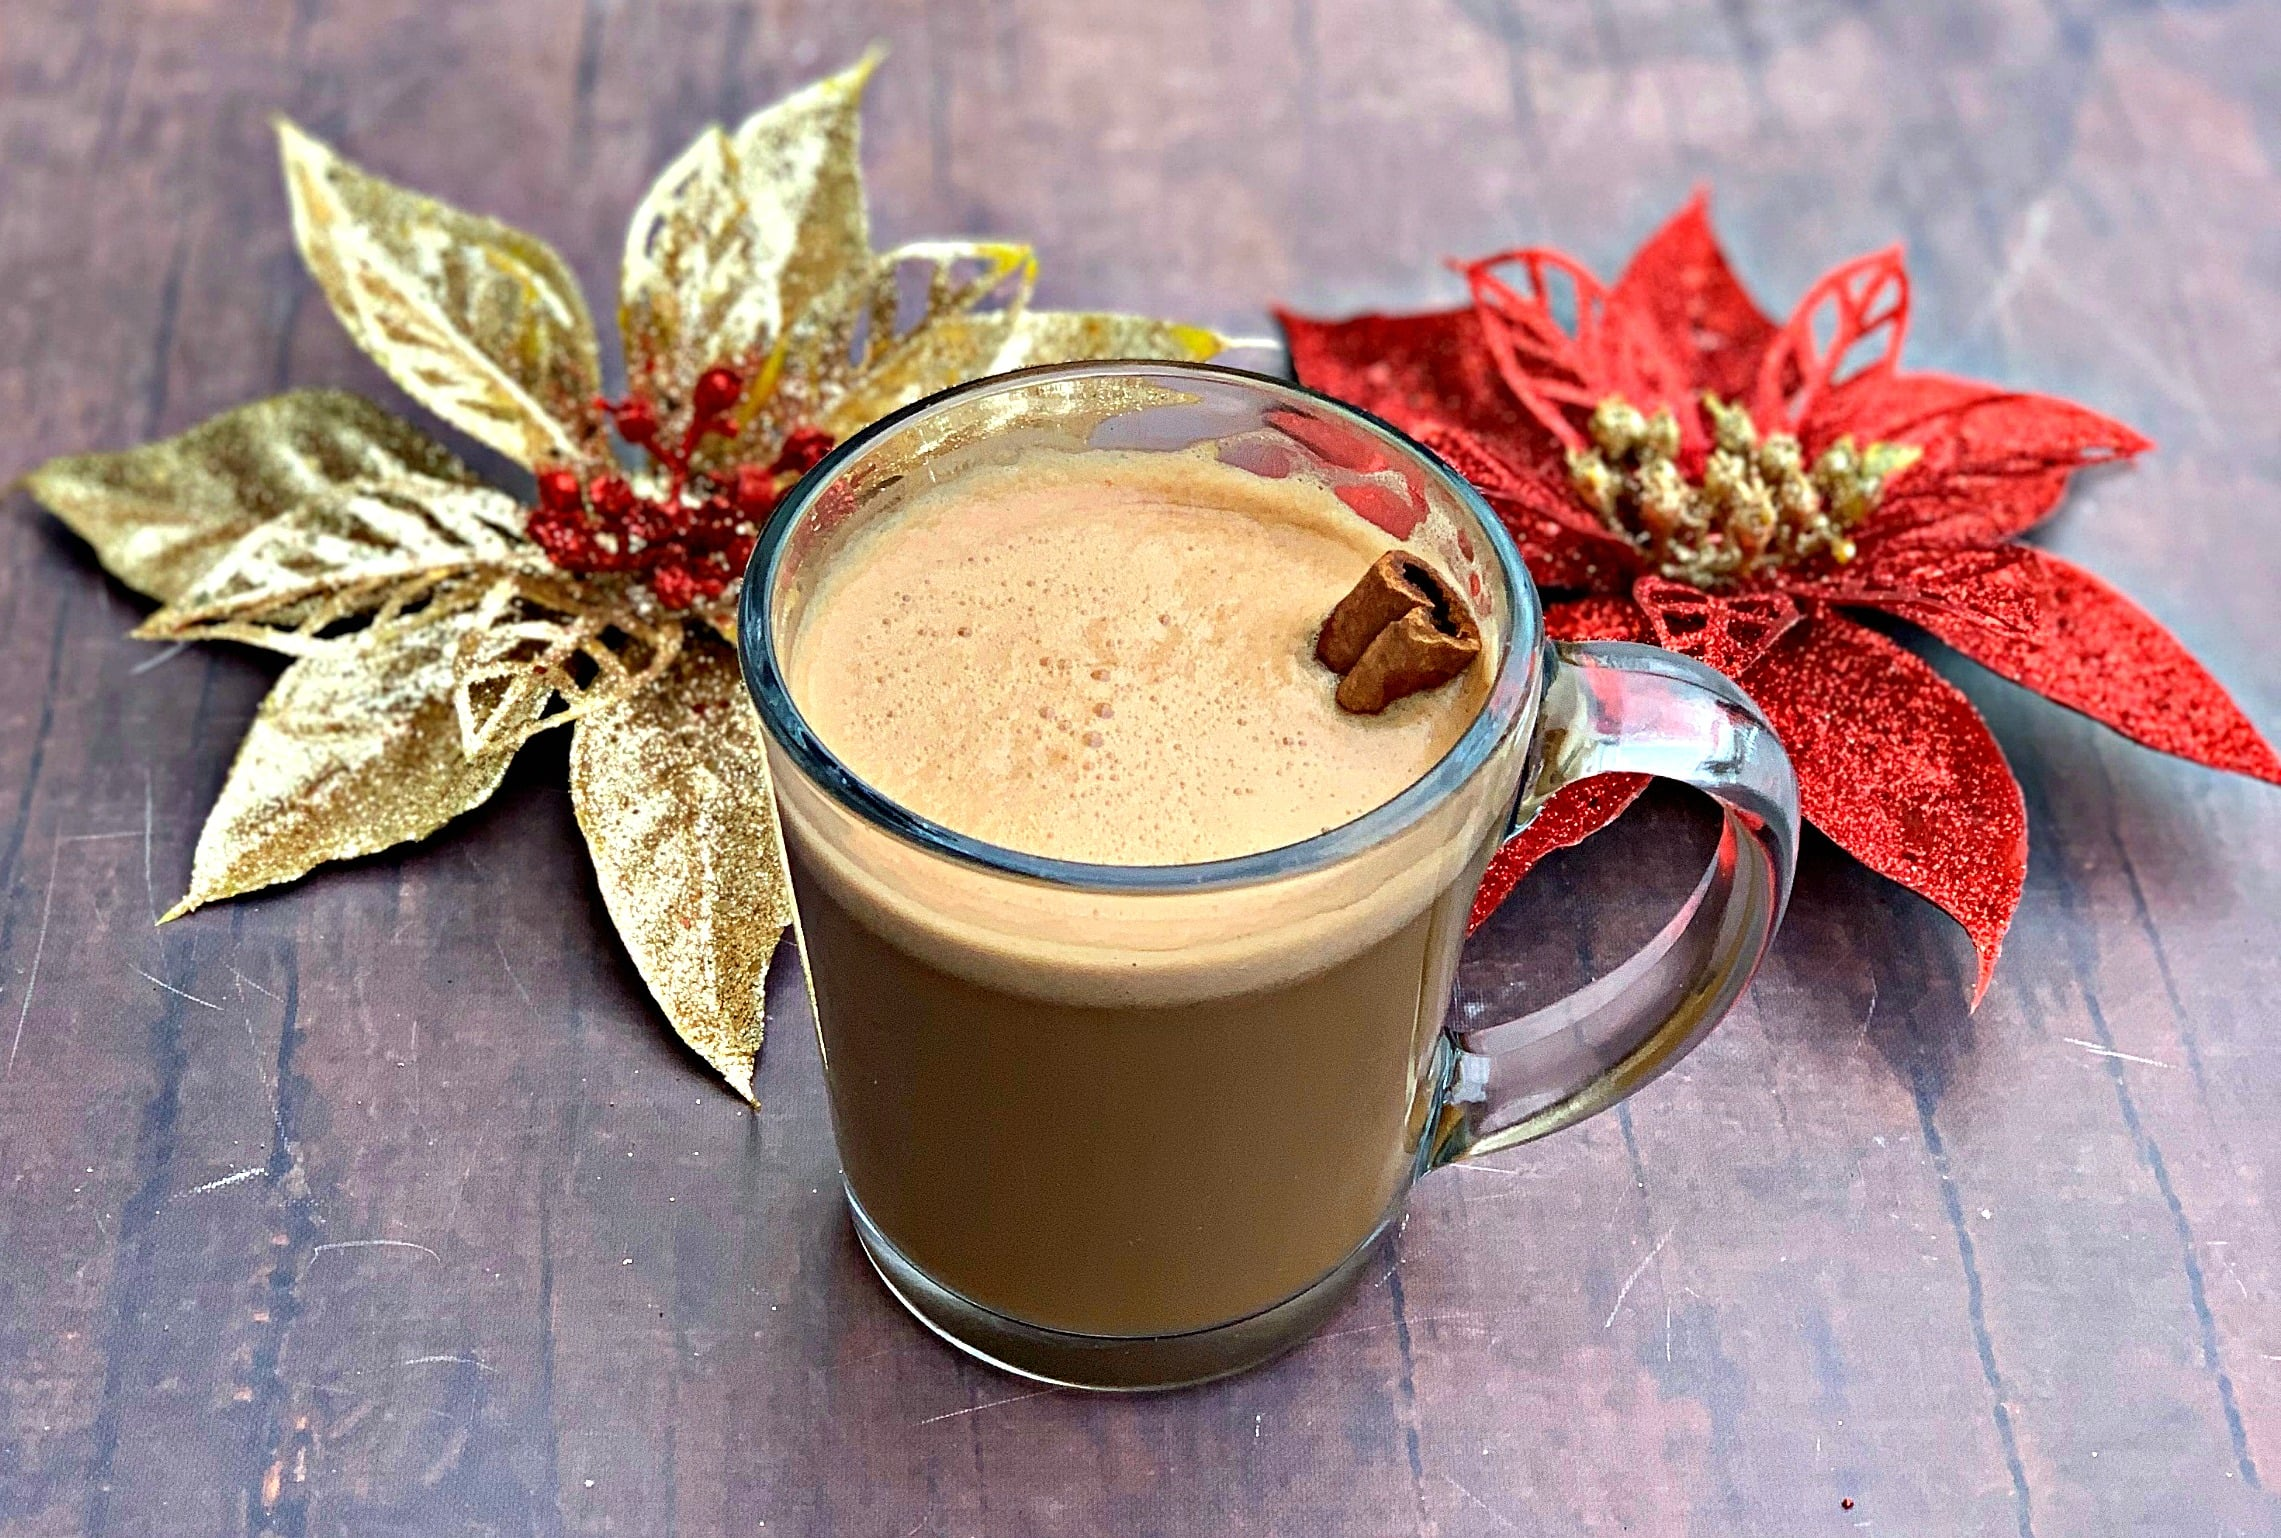 keto low carb peppermint mocha with christmas decorations